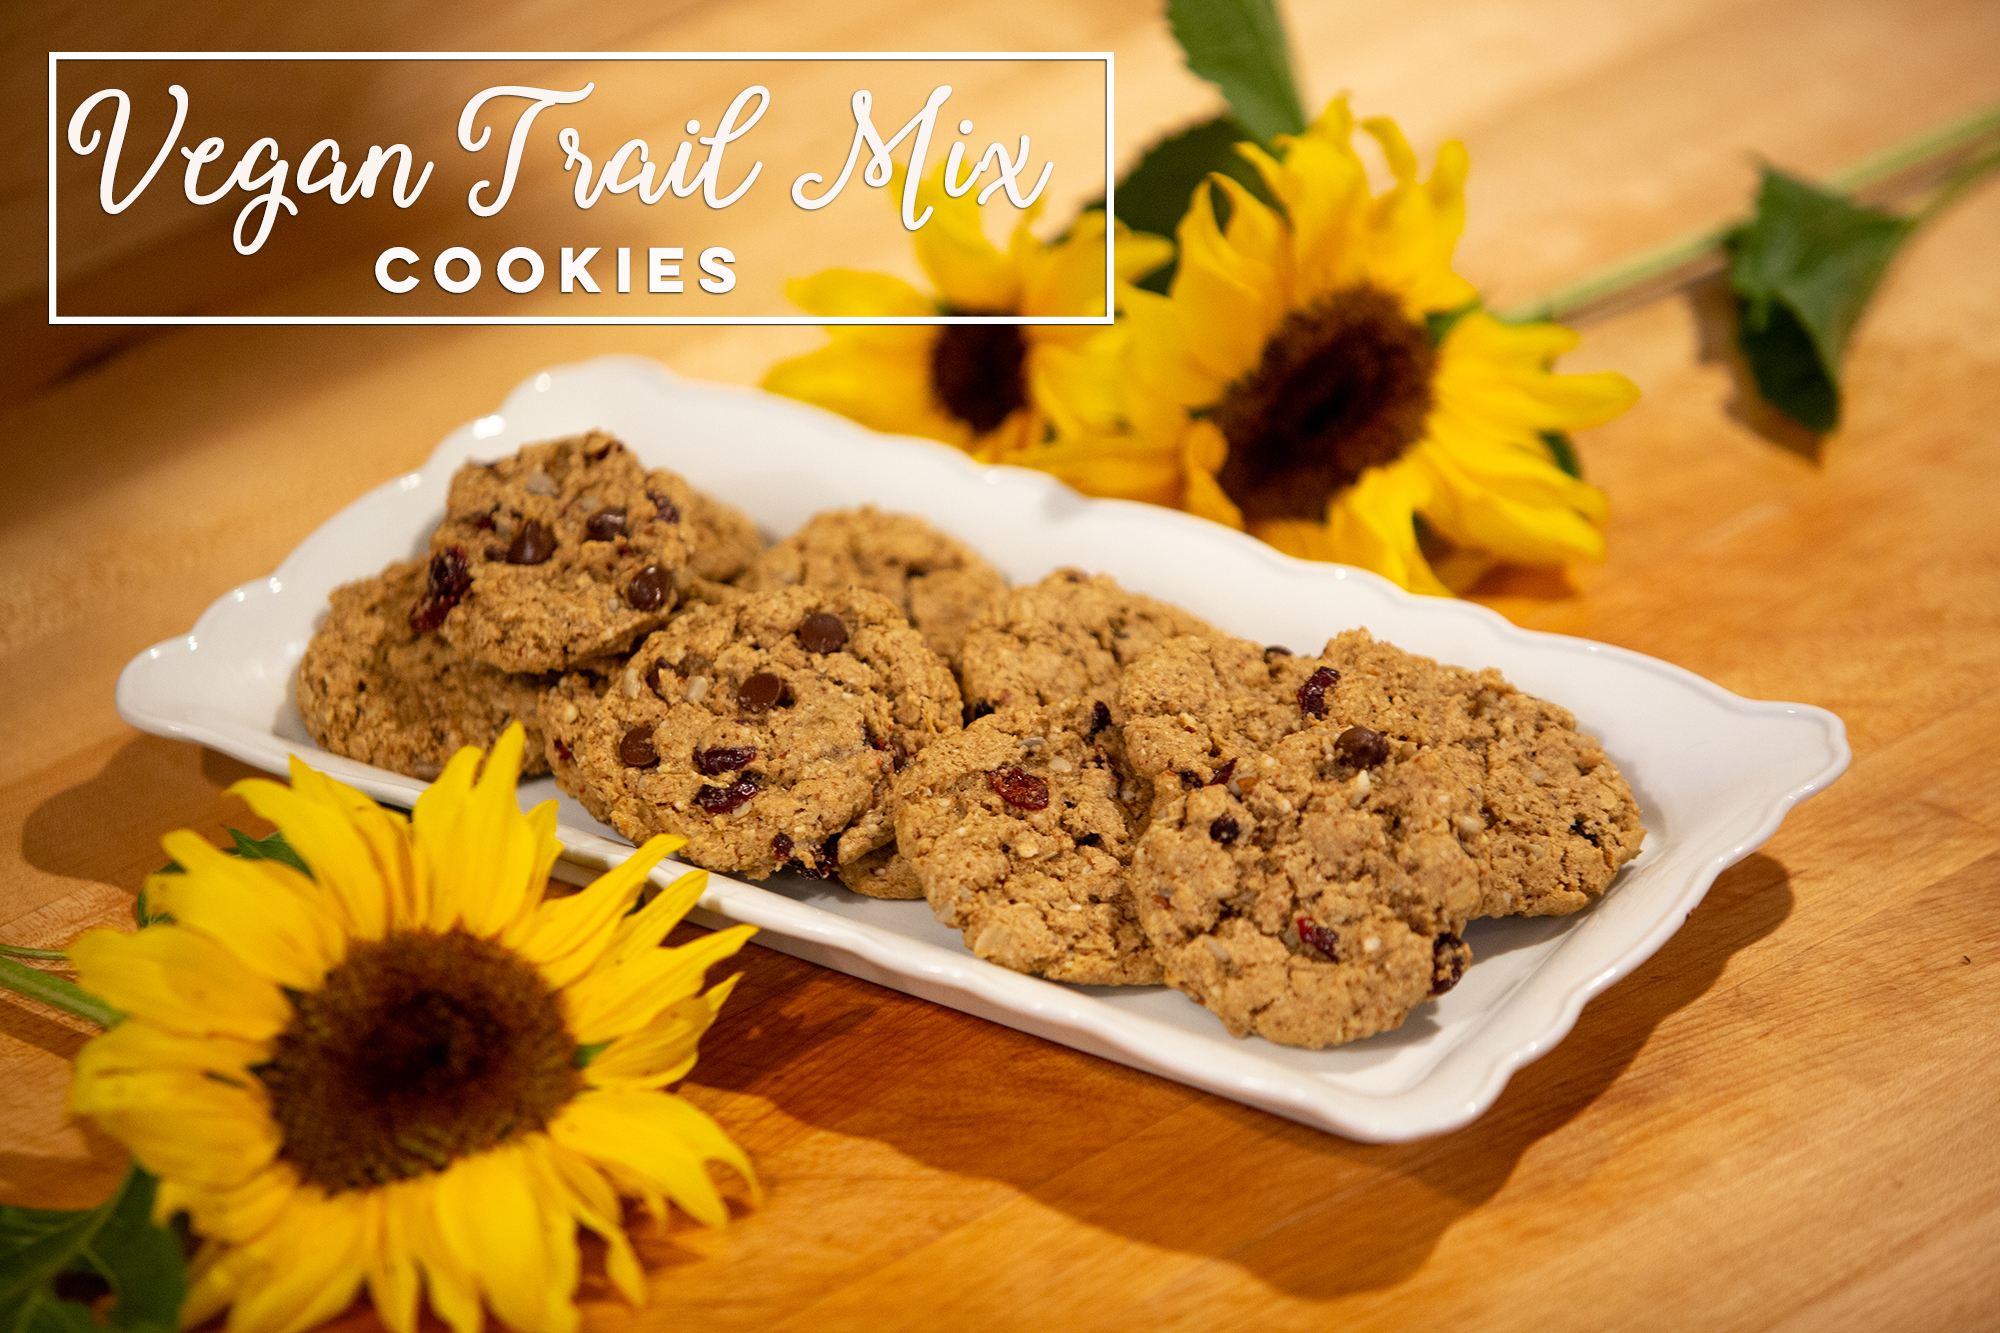 Vegan Trail Mix Cookies - Elsie's vegan trail mix cookies are the perfect addition to your summer picnic and a great treat for any occasion. Click the photo for recipe.